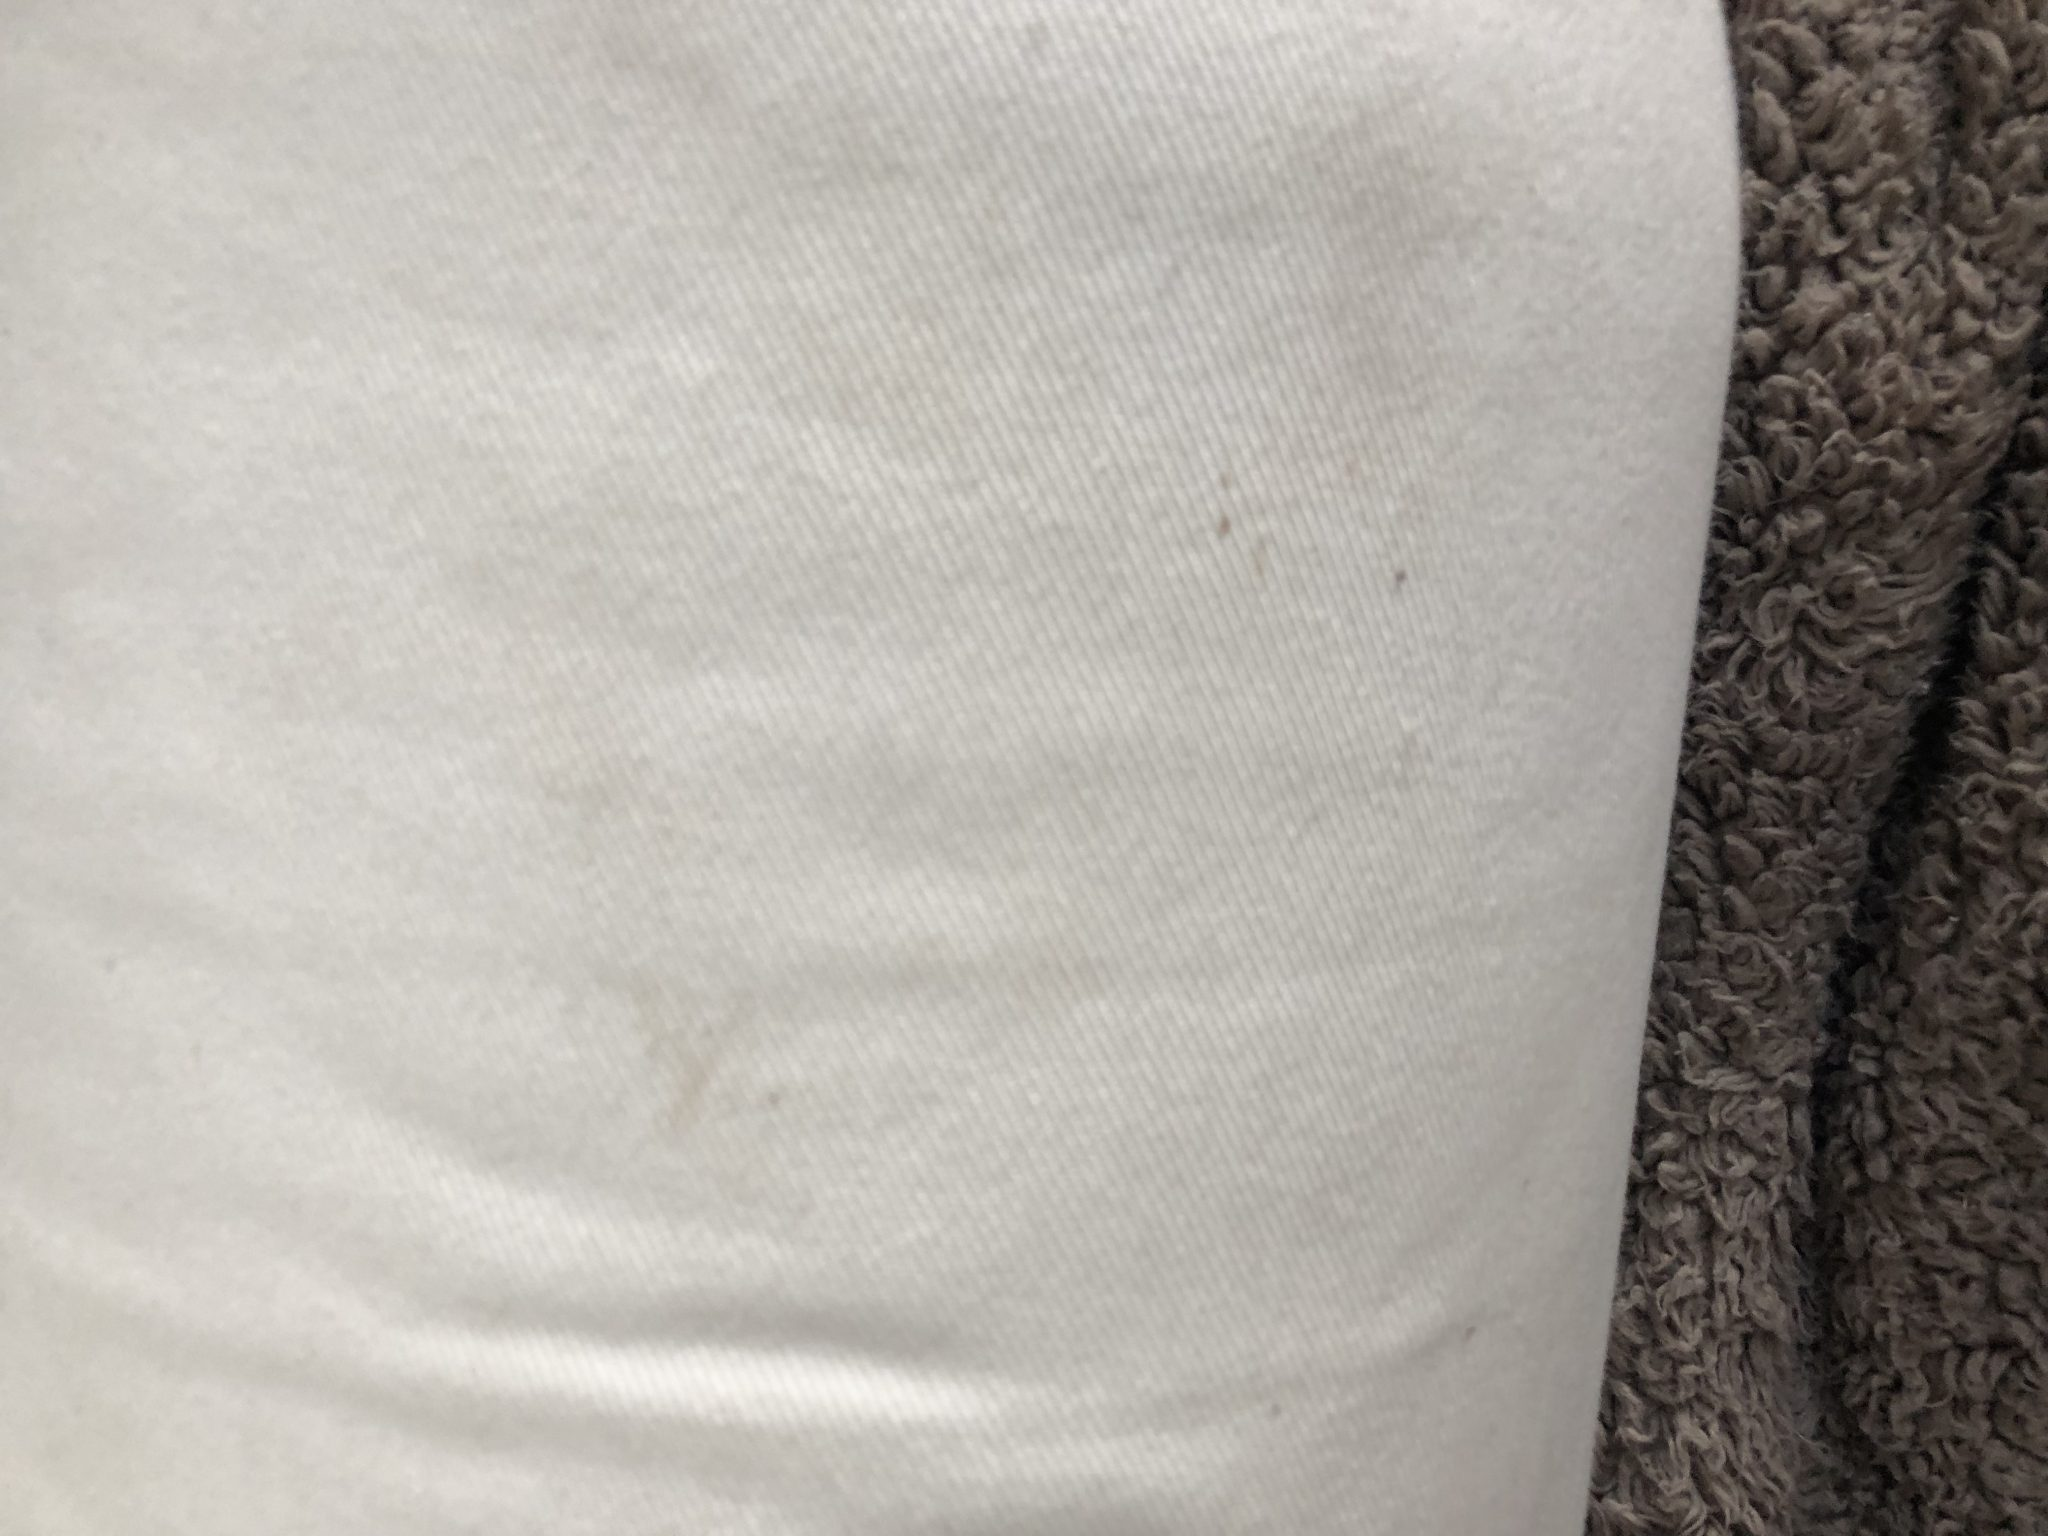 More stains on my white ikea couch and chair. CentsibleChateau.com